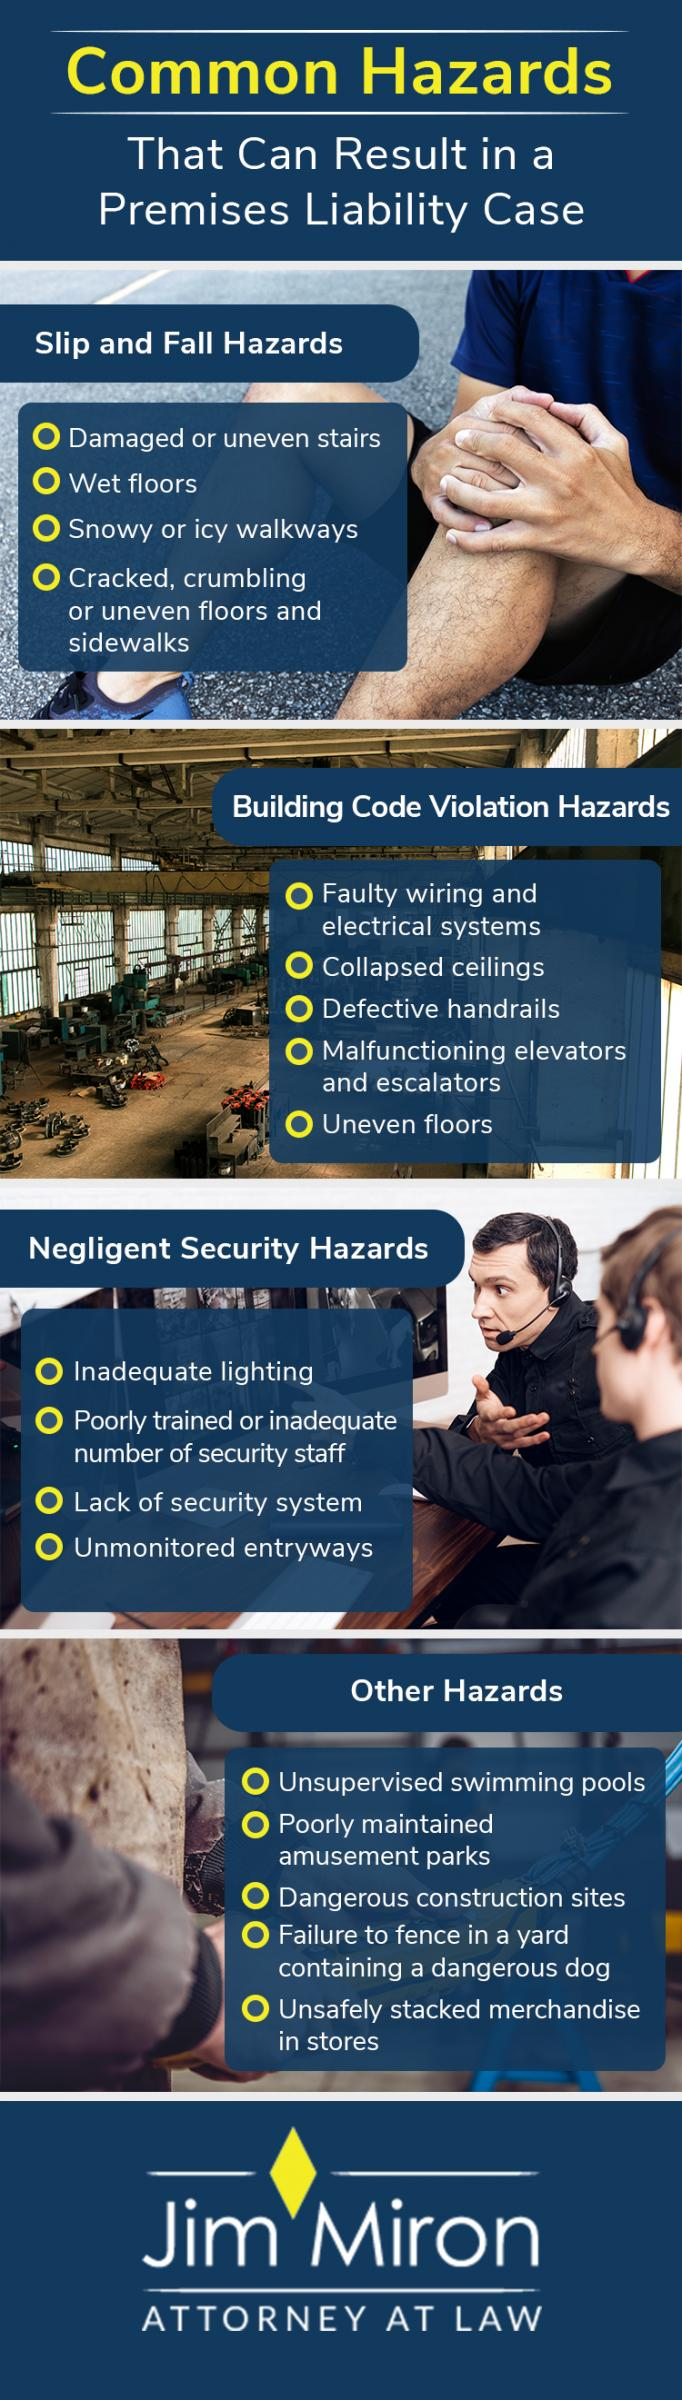 infographic highlighting common hazards that can result in a premises liability case